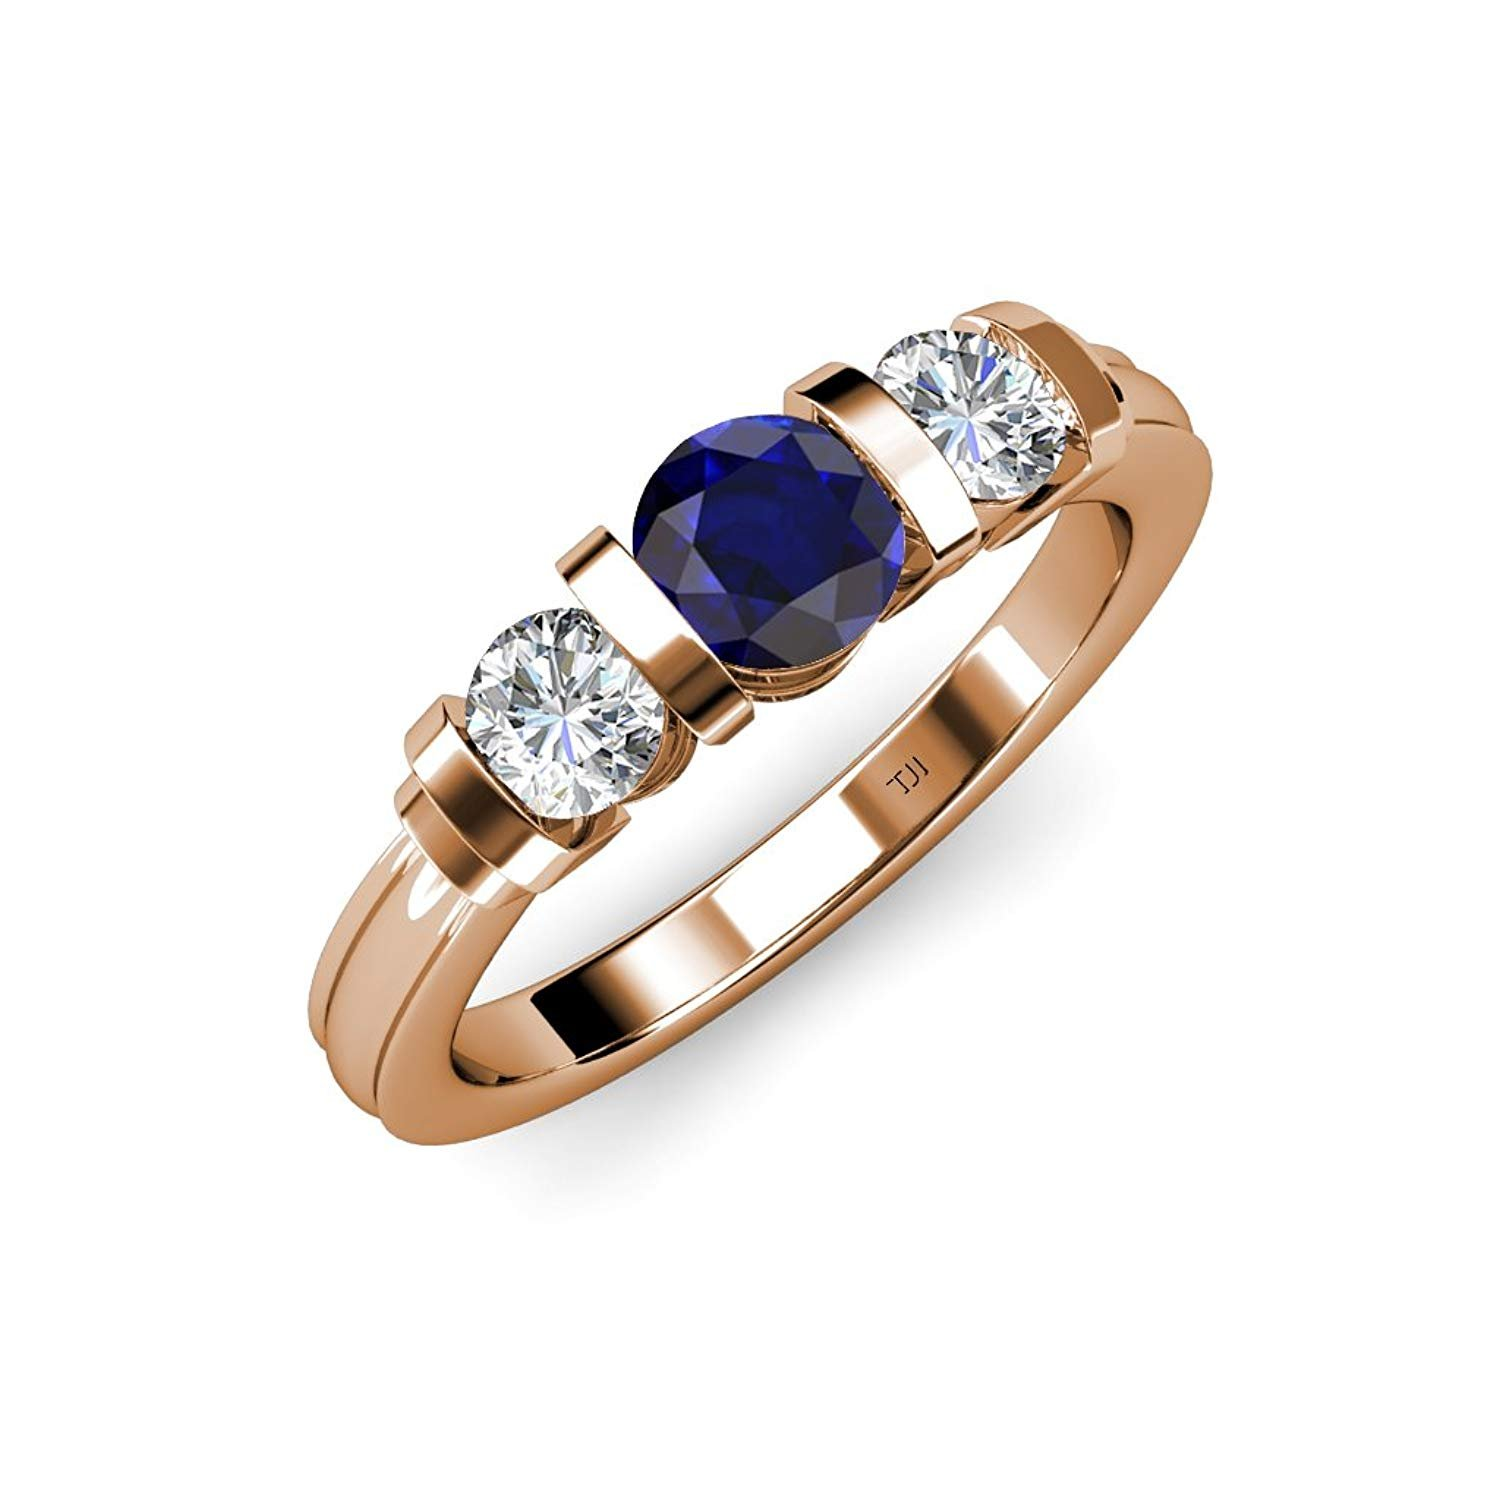 Blue Sapphire and Diamond (SI2-I1, G-H) Bar Set Three Stone Ring 1.13 ct tw in 14K Rose Gold.size 4.5 by TriJewels